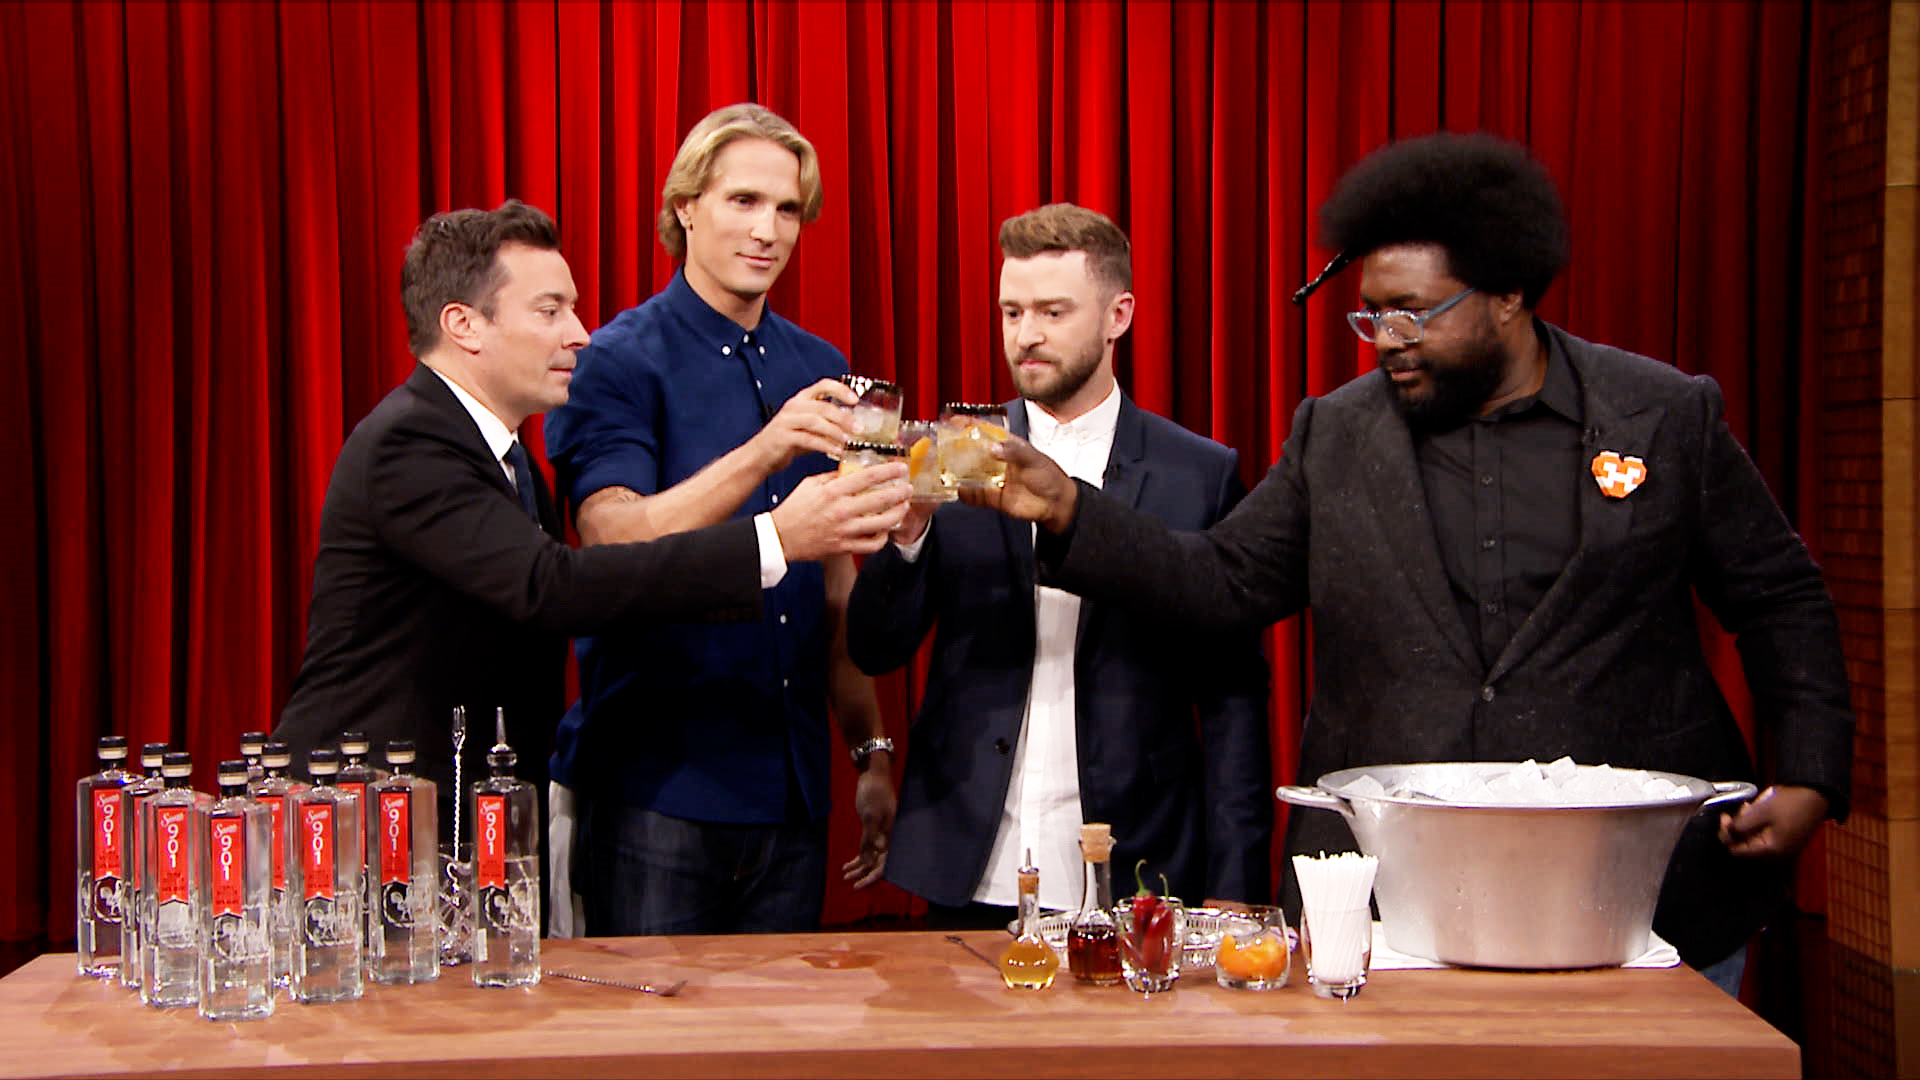 Lovely Watch Tonight Show Starring Jimmy Fallon Justin Timberlaketeaches Jimmy How To Make A Tequila Cocktail Watch Tonight Show Starring Jimmy Fallon Justin nice food Jimmy Fallon Alcoholic